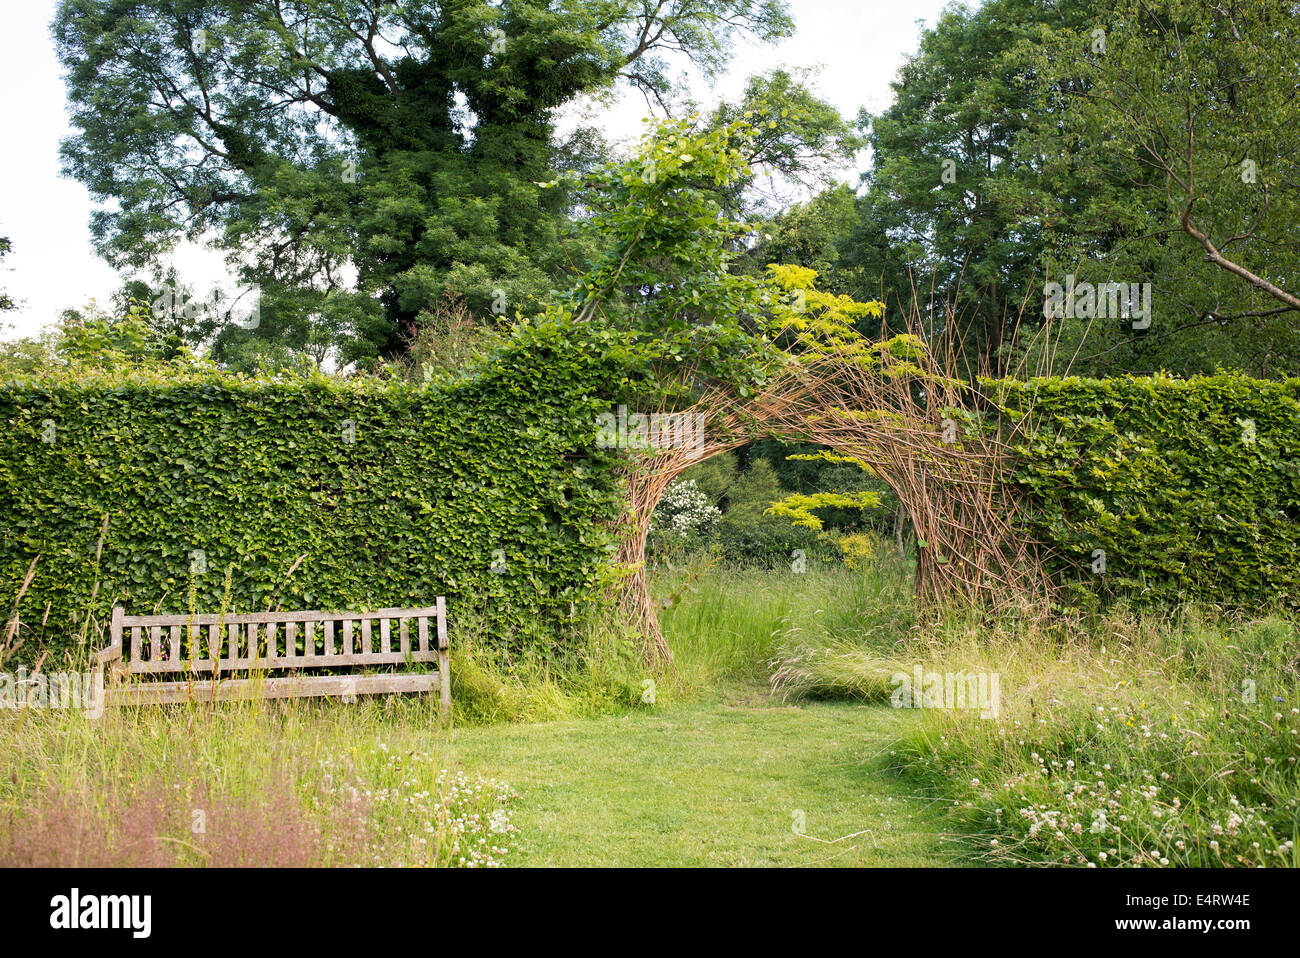 Willow Archway dividing a hedge over garden path at RHS Harlow Carr. Harrogate, England - Stock Image